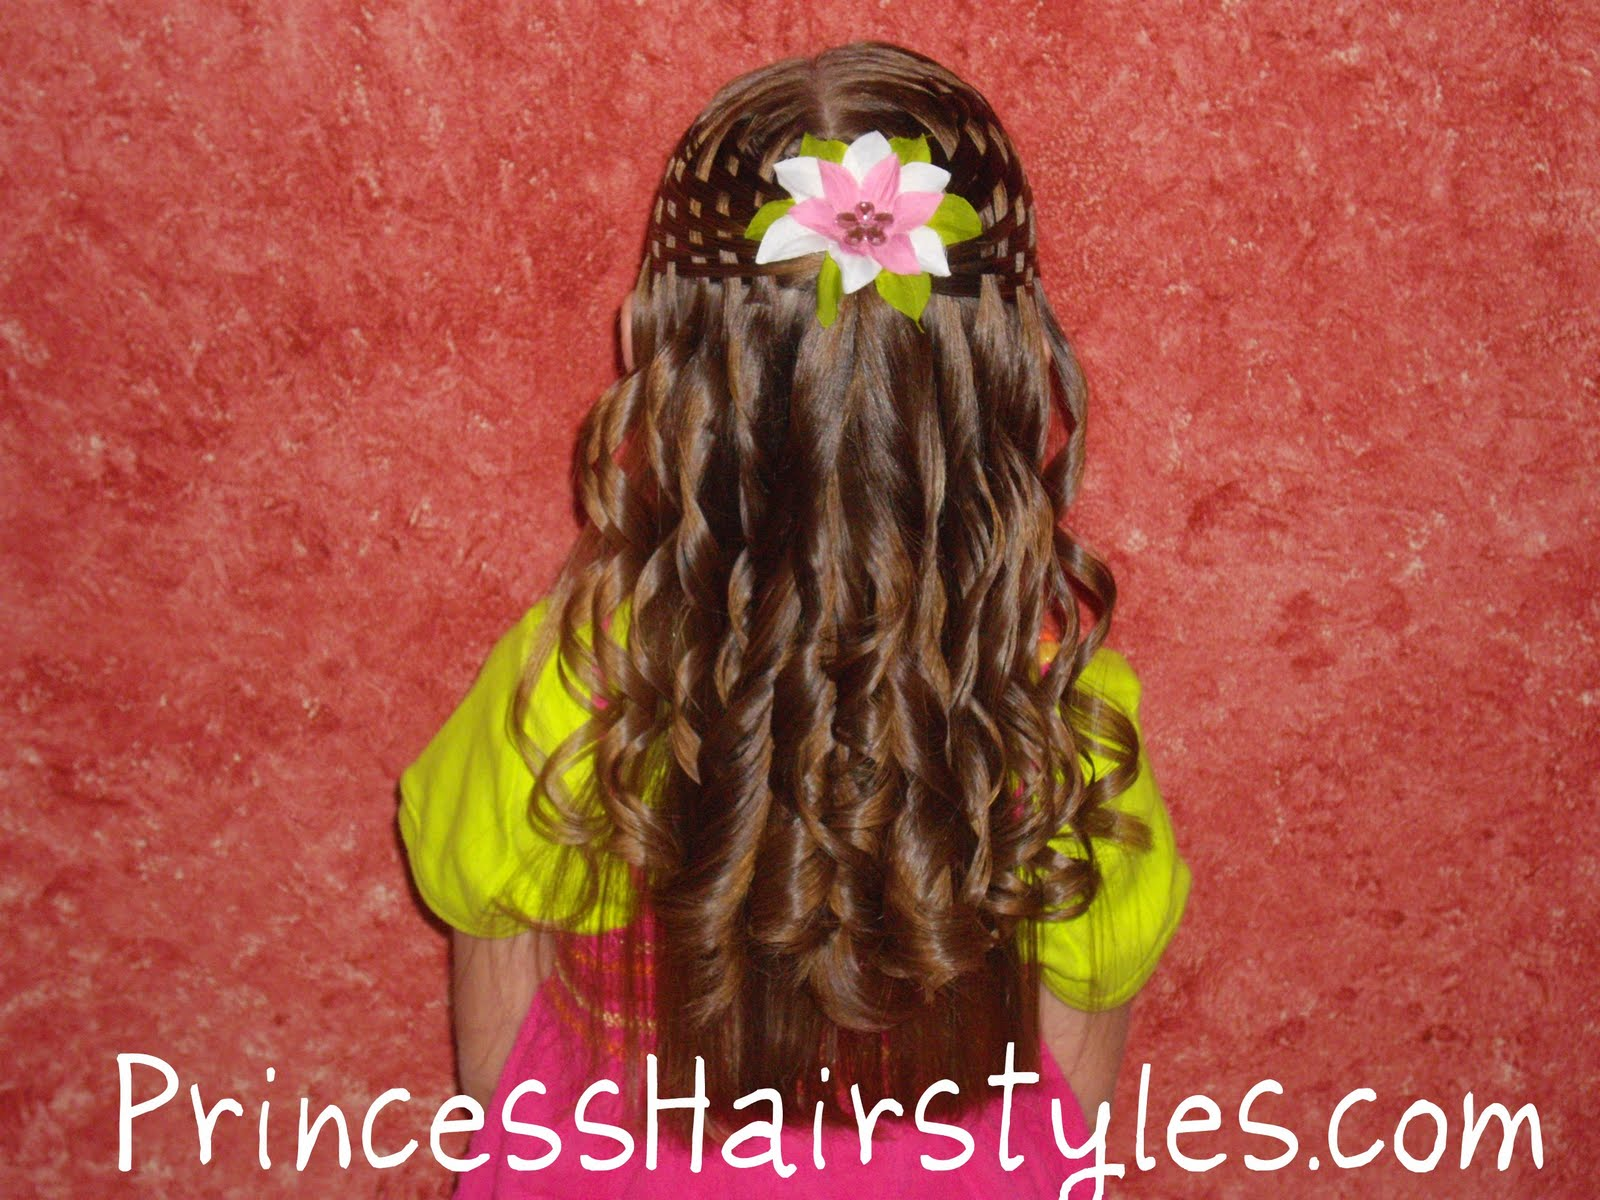 Curling Iron Ringlets Hairstyles For Girls Princess